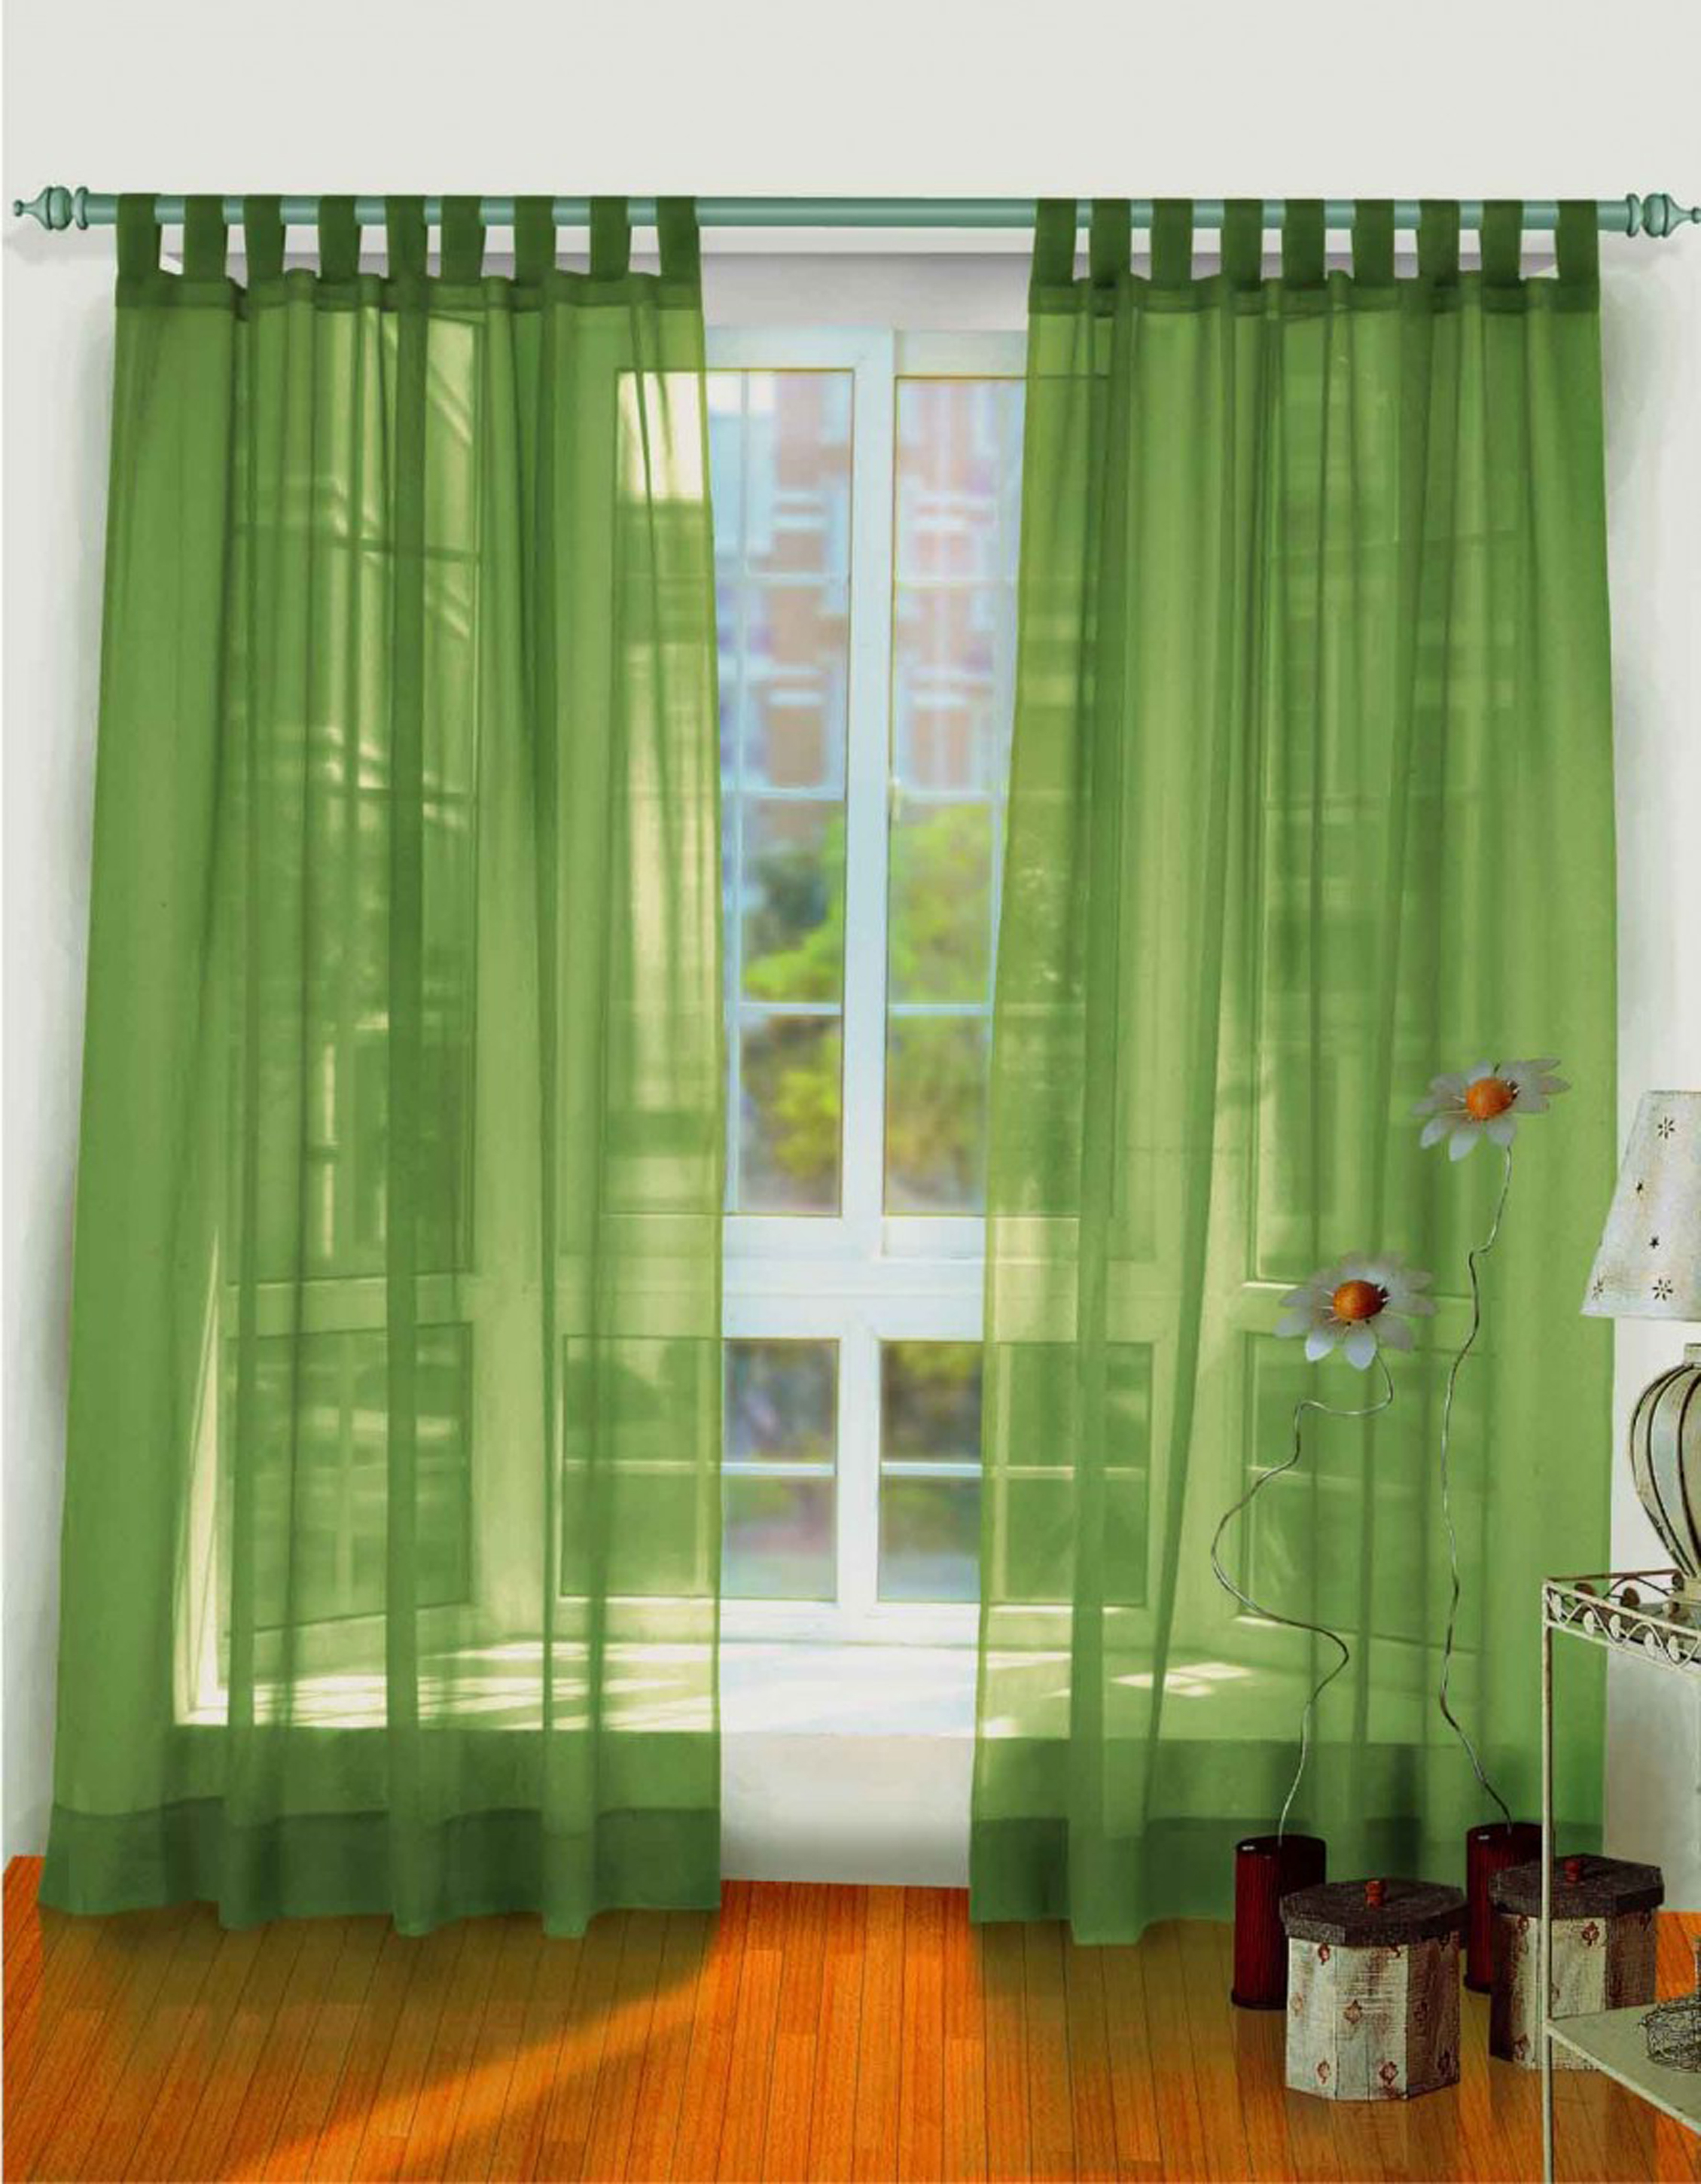 Minimalist Green Window Curtain Design Idea With White Window Frame Luxurious Window Curtain Design Ideas (Image 22 of 25)